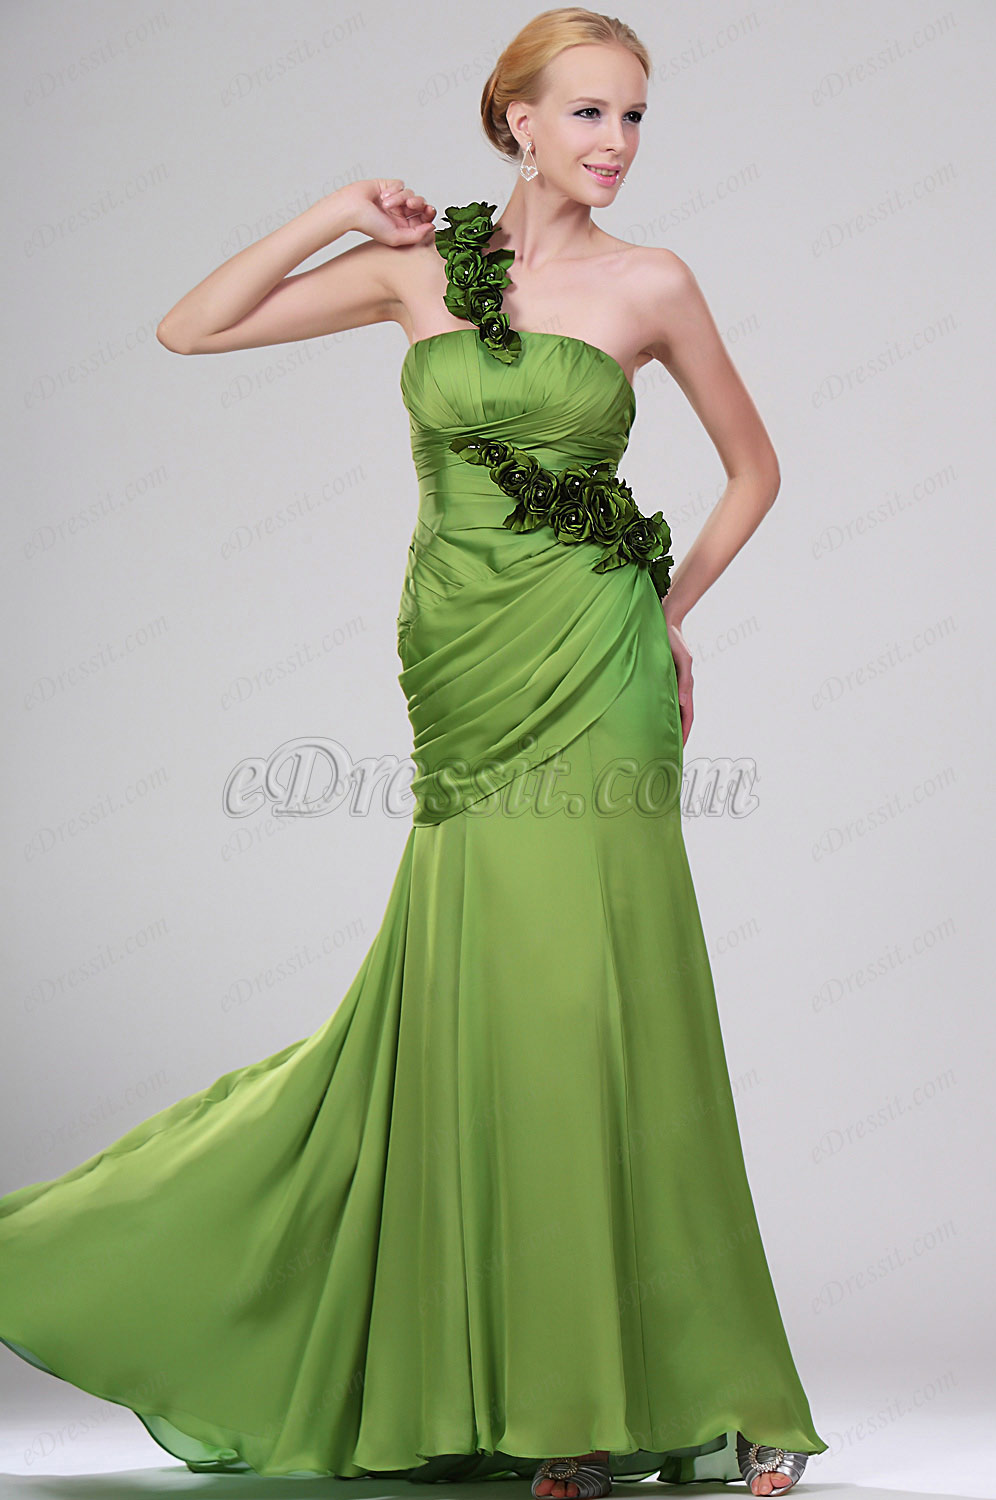 Clearance Sale! eDressit Green Evening Dress (00110104c)